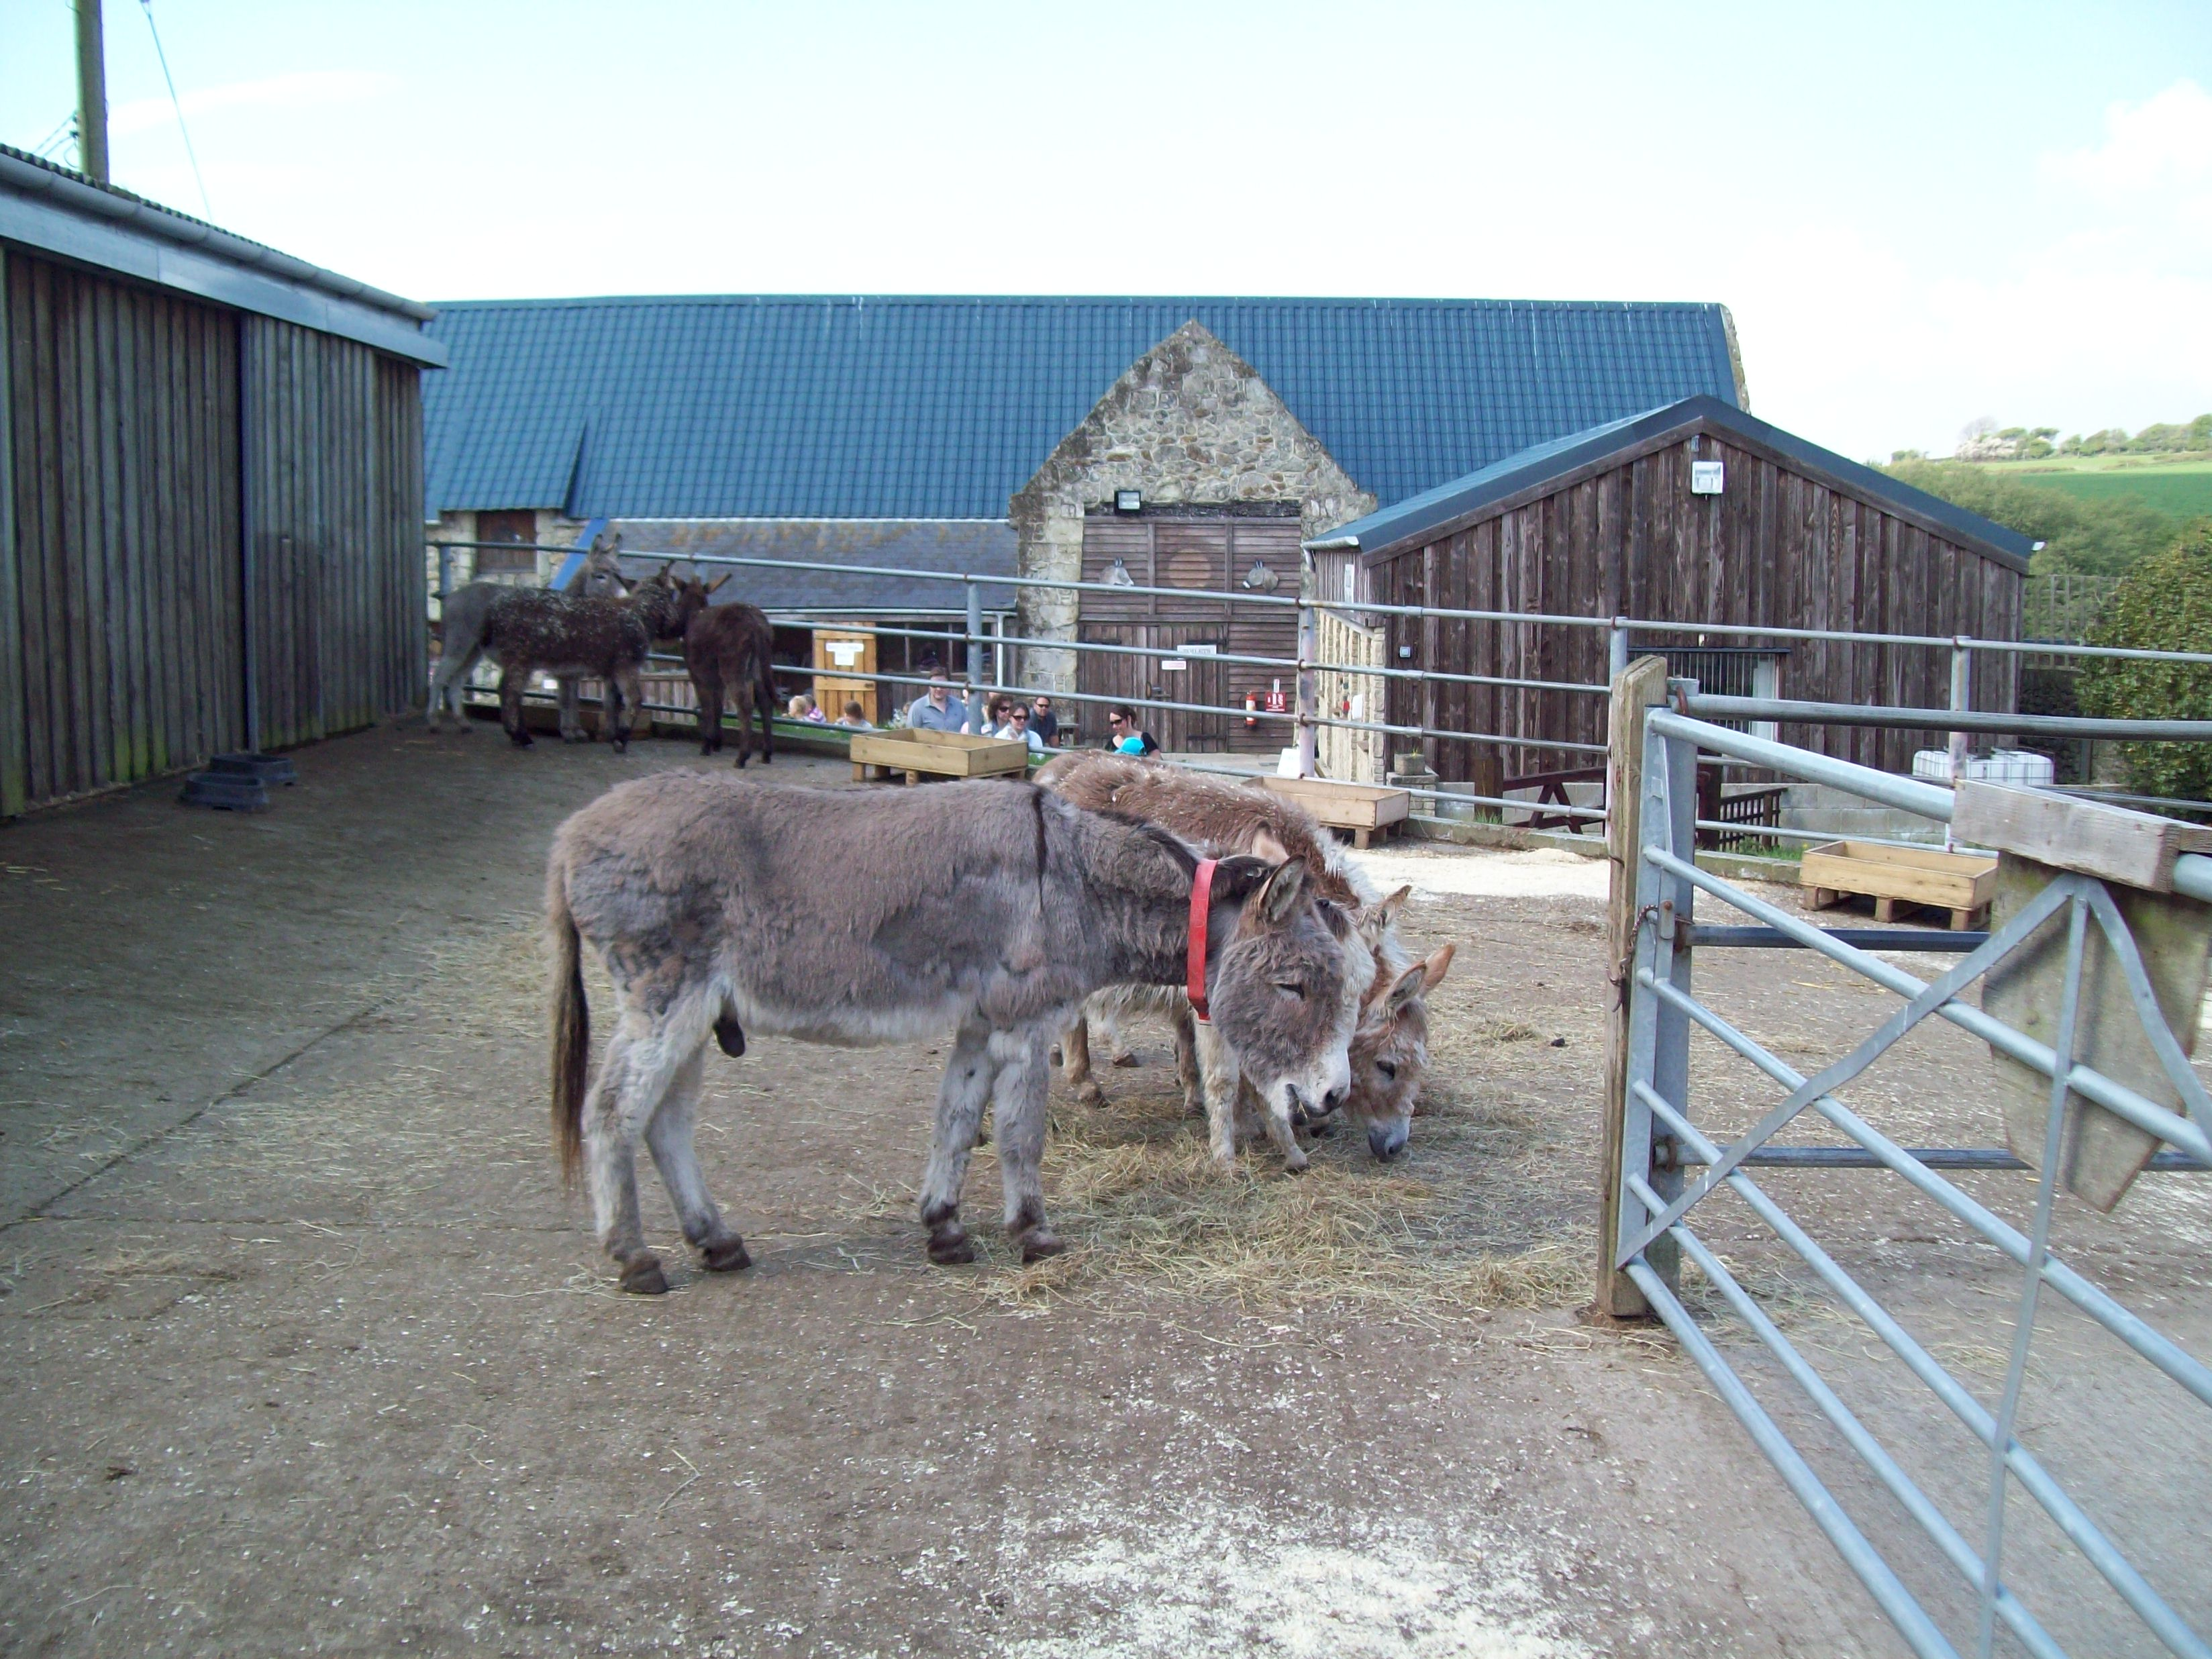 The Isle of Wight Donkey Sanctuary : Episode 2.5